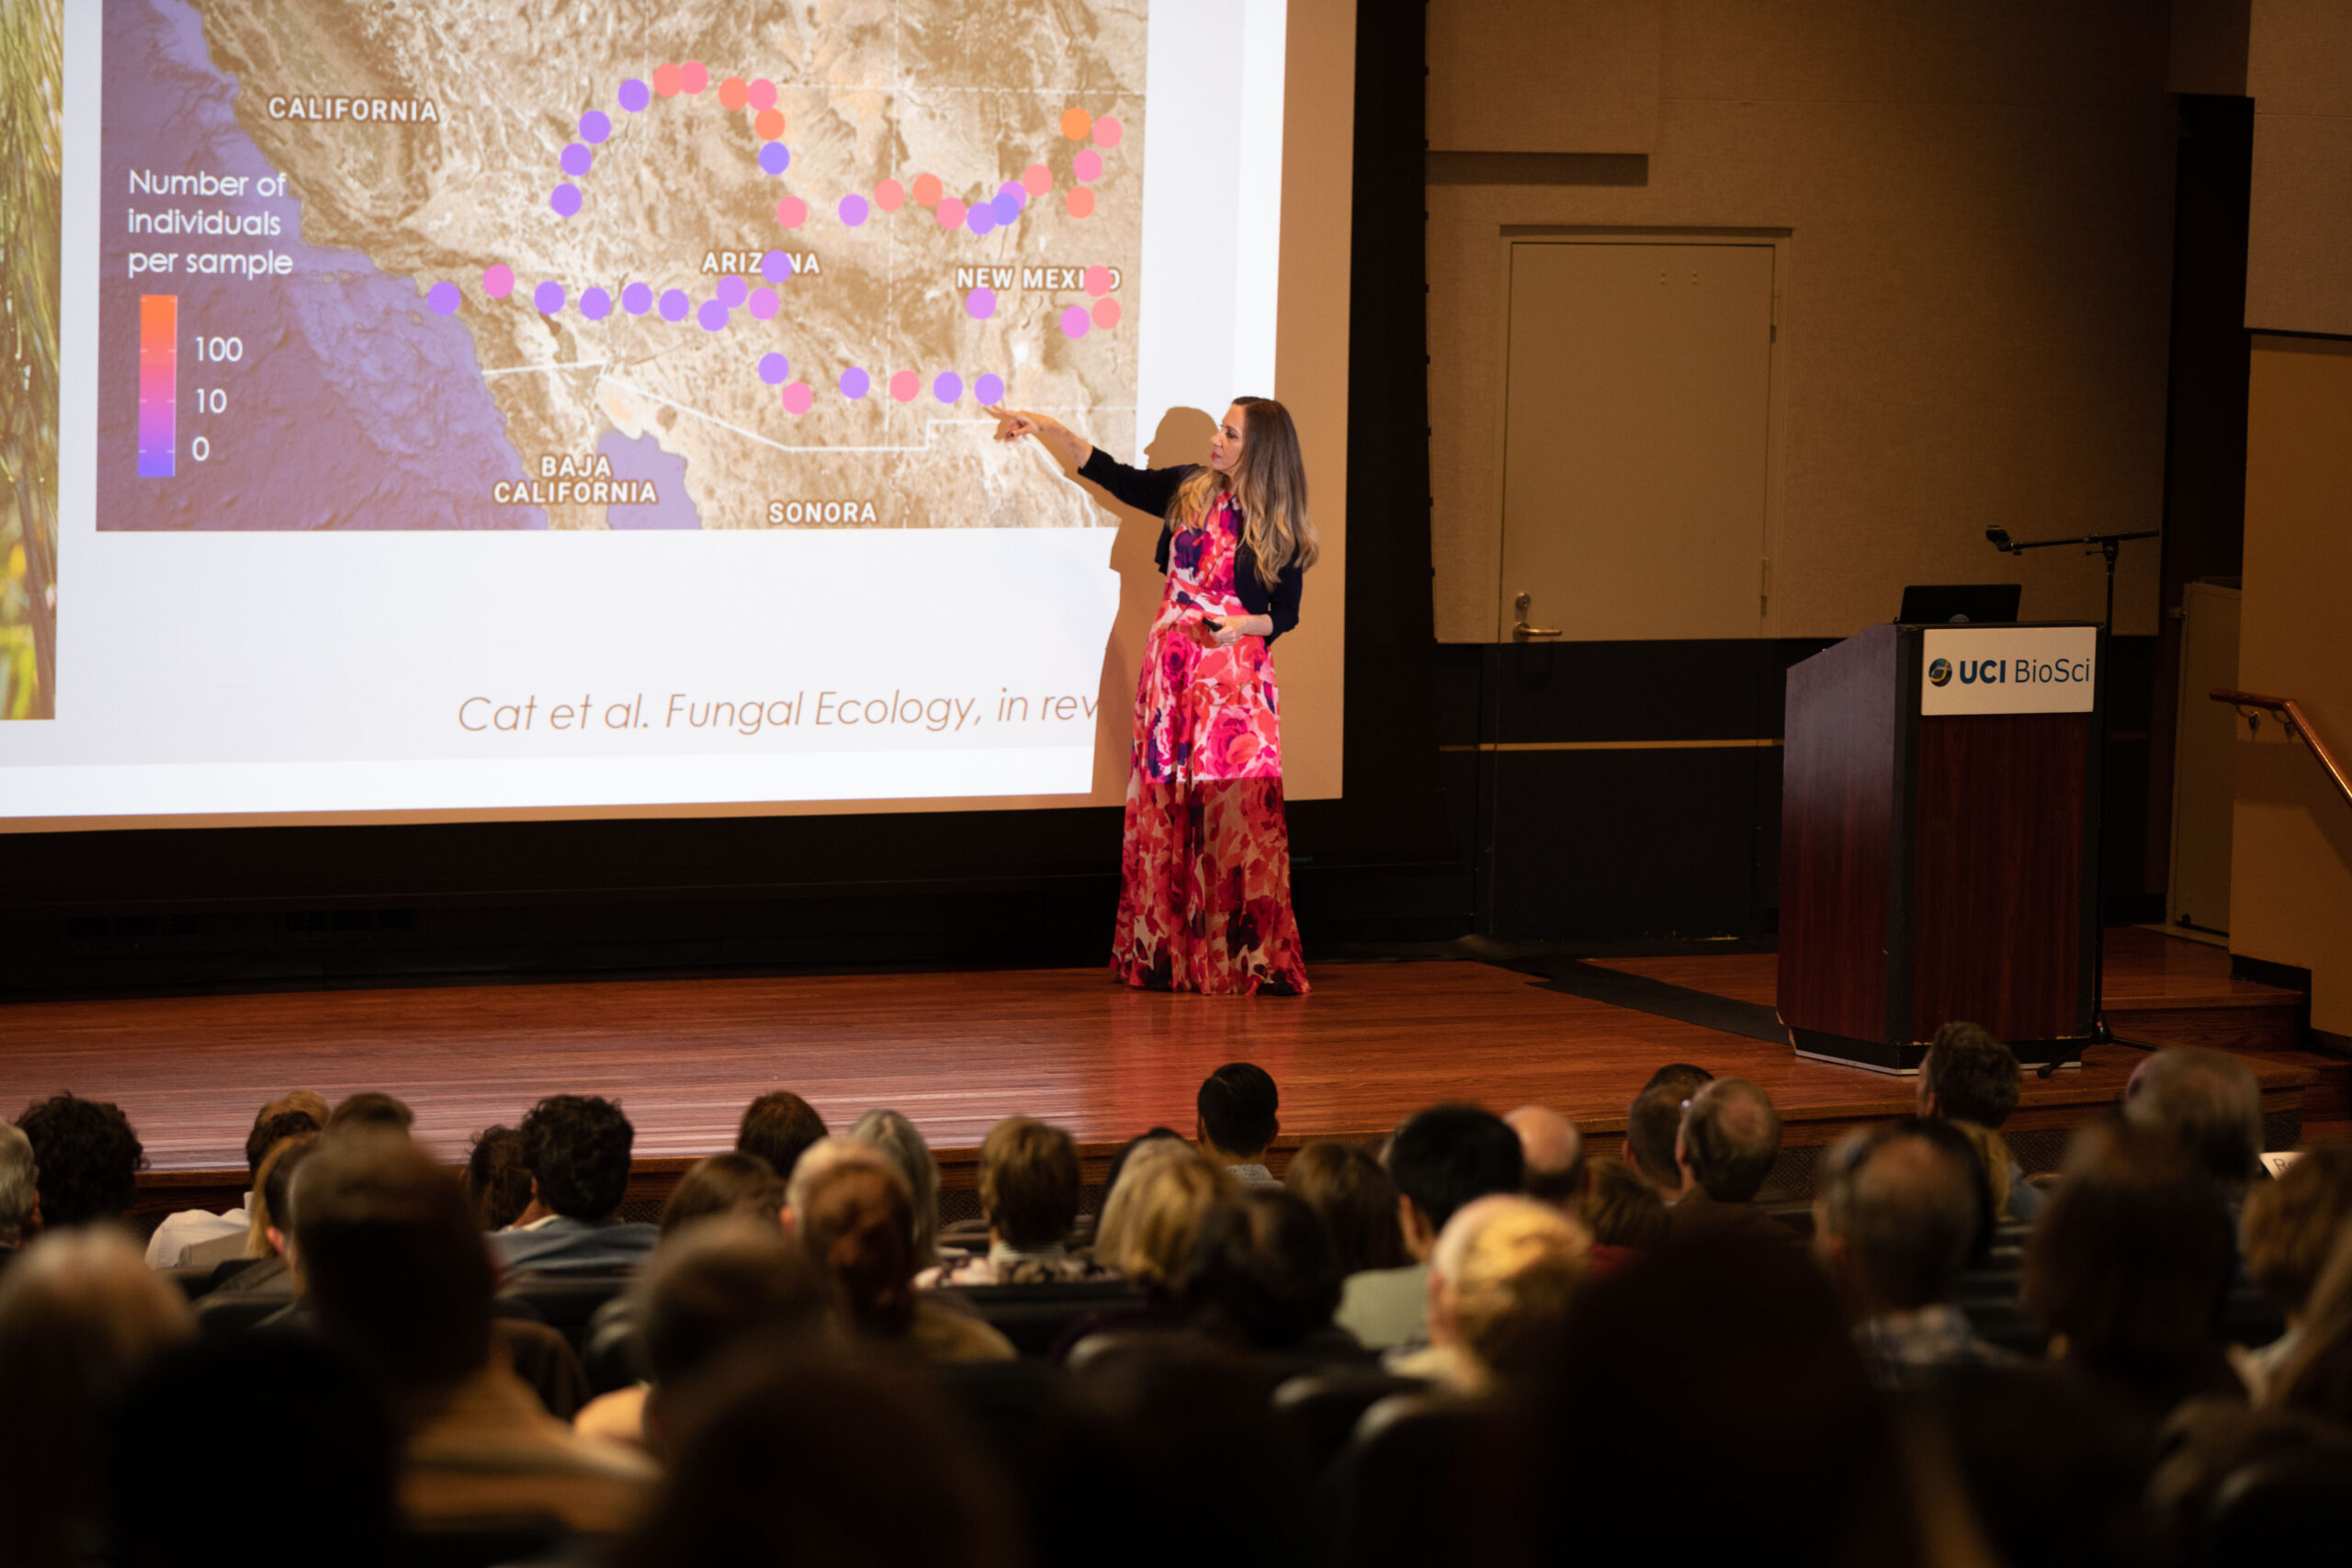 Photo of Kathleen Treseder, PhD. giving a lecture at a Deans Distinguished Lecture